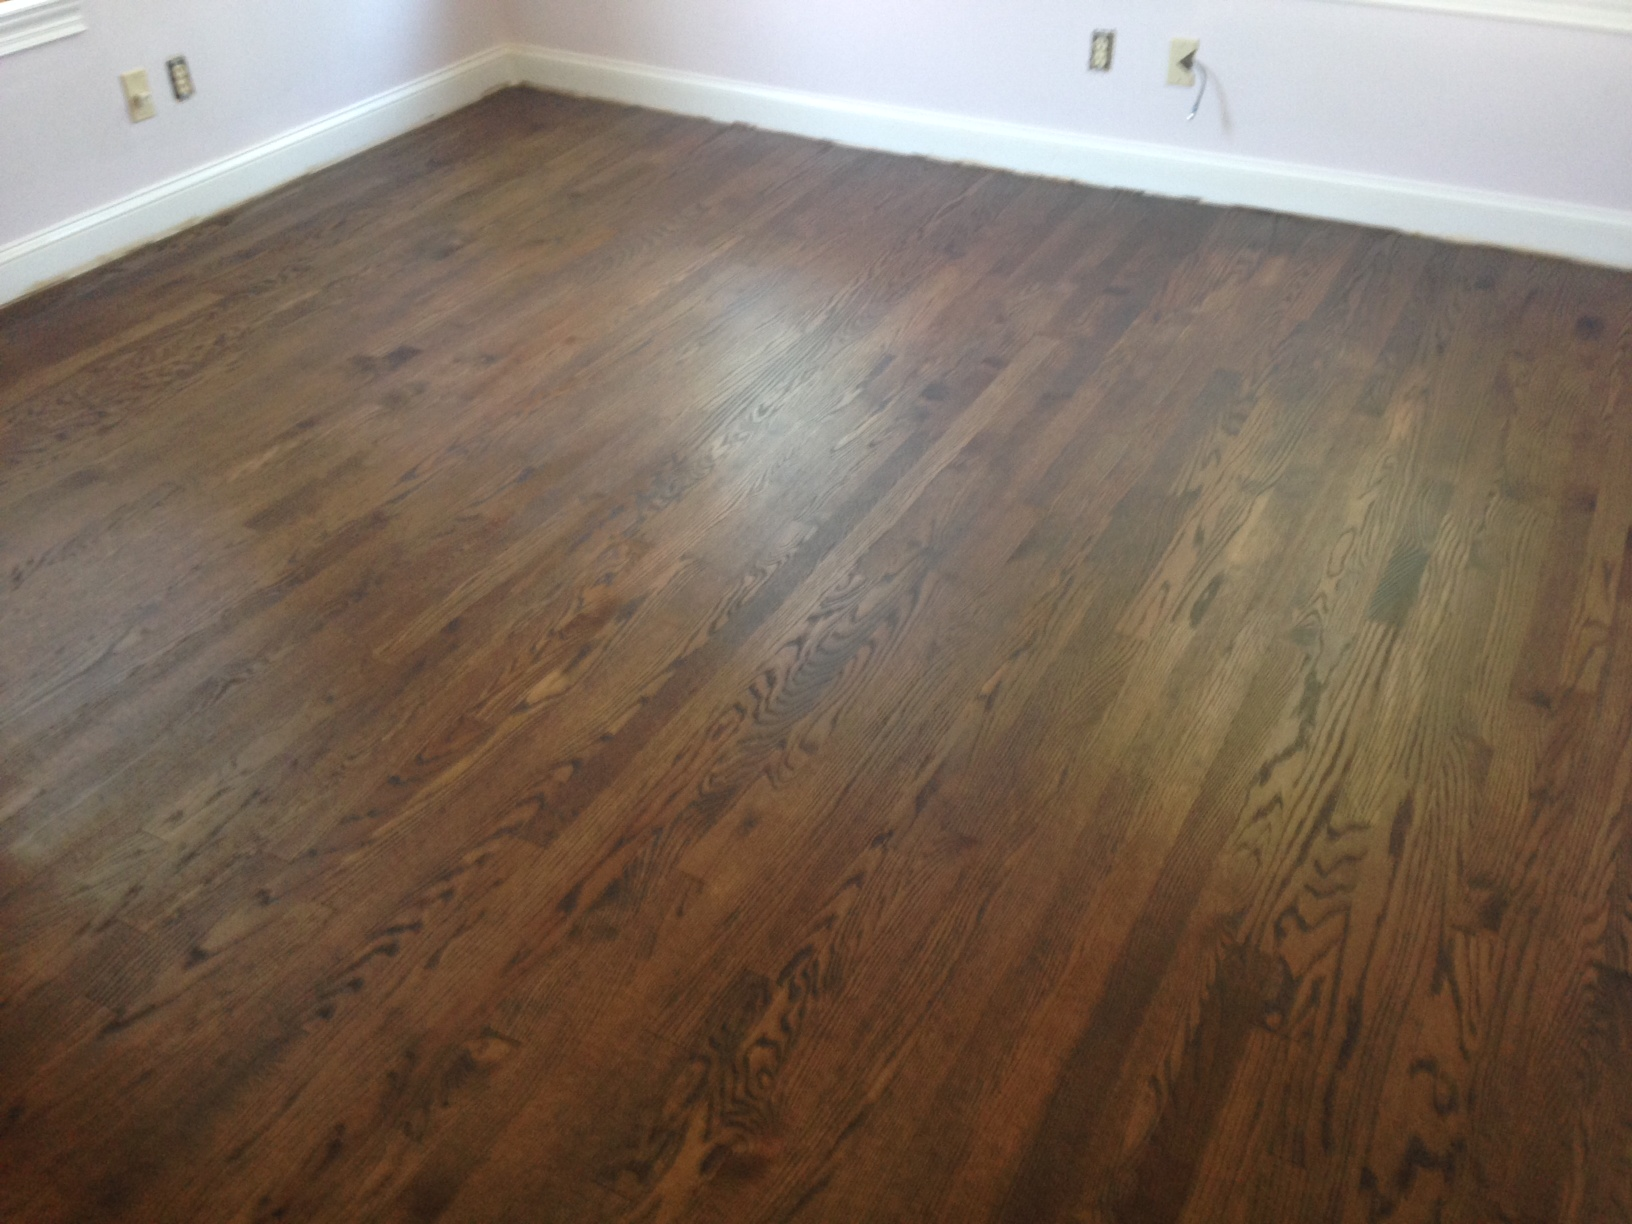 New Hardwood Floors & Wood Floor Refinishing